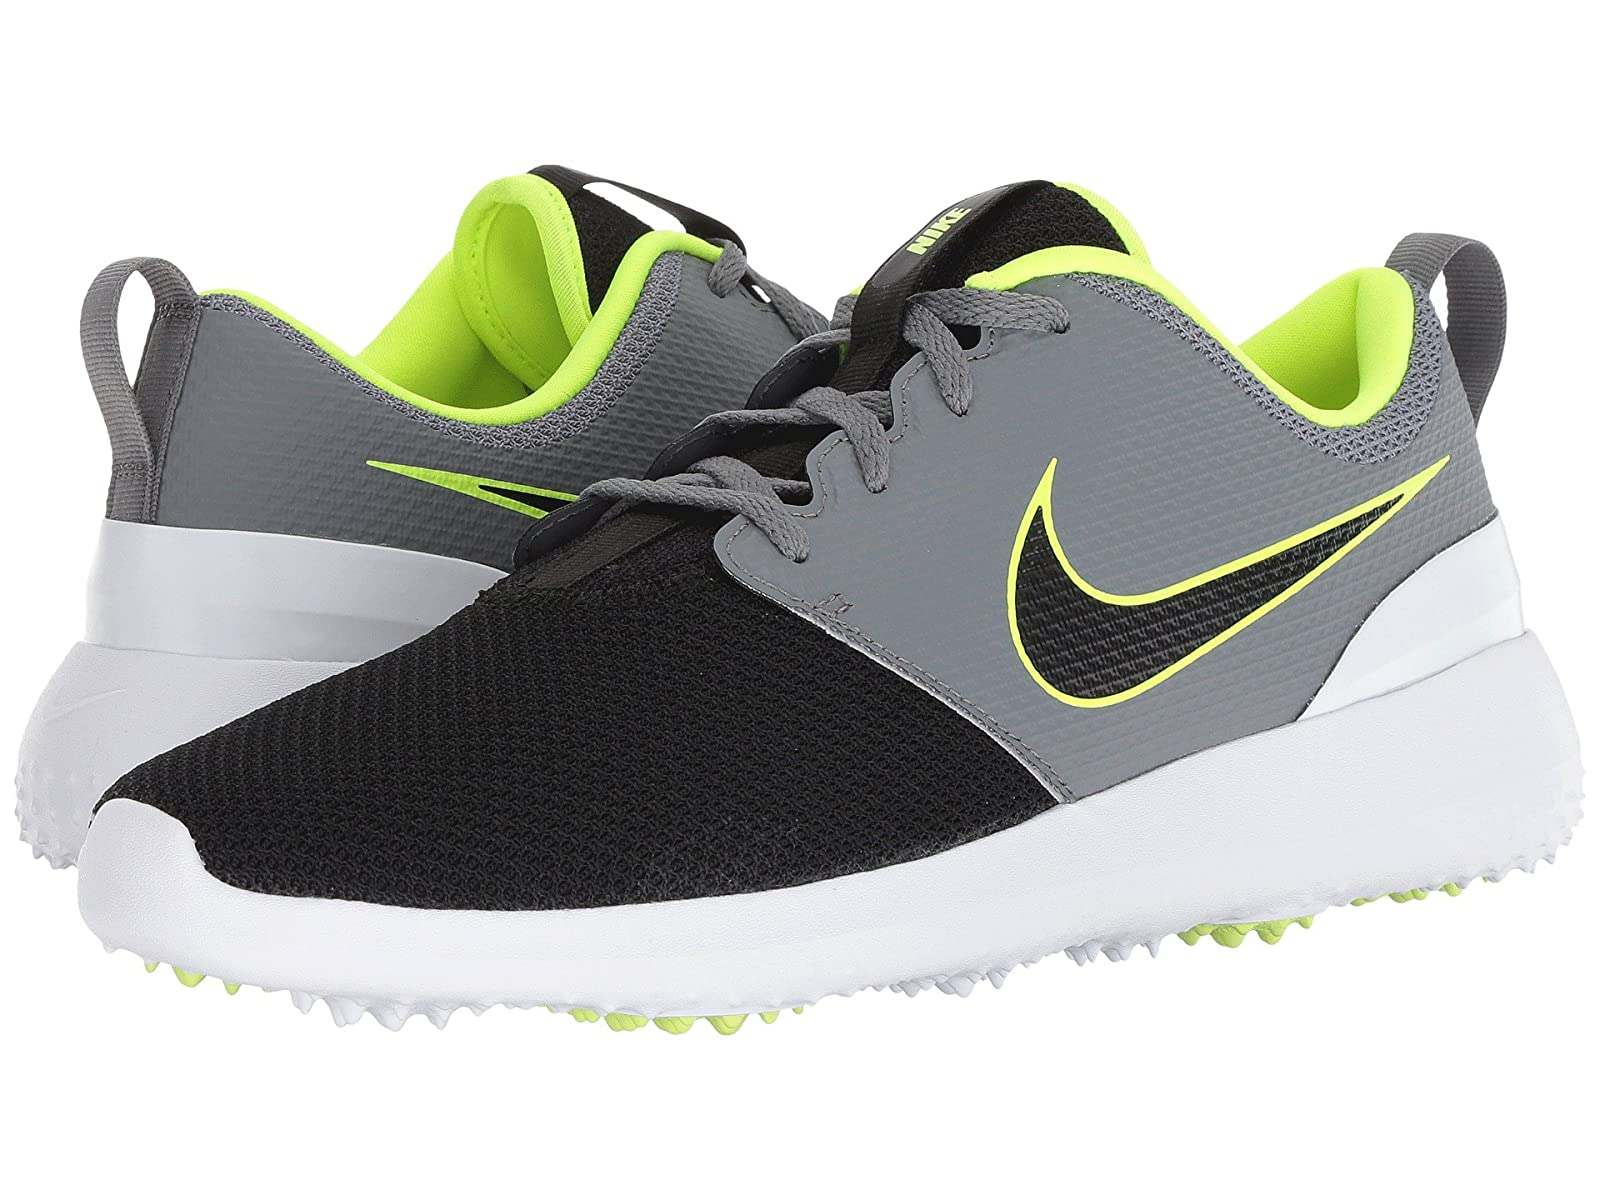 Nike Golf Roshe GCheap and distinctive eye-catching shoes